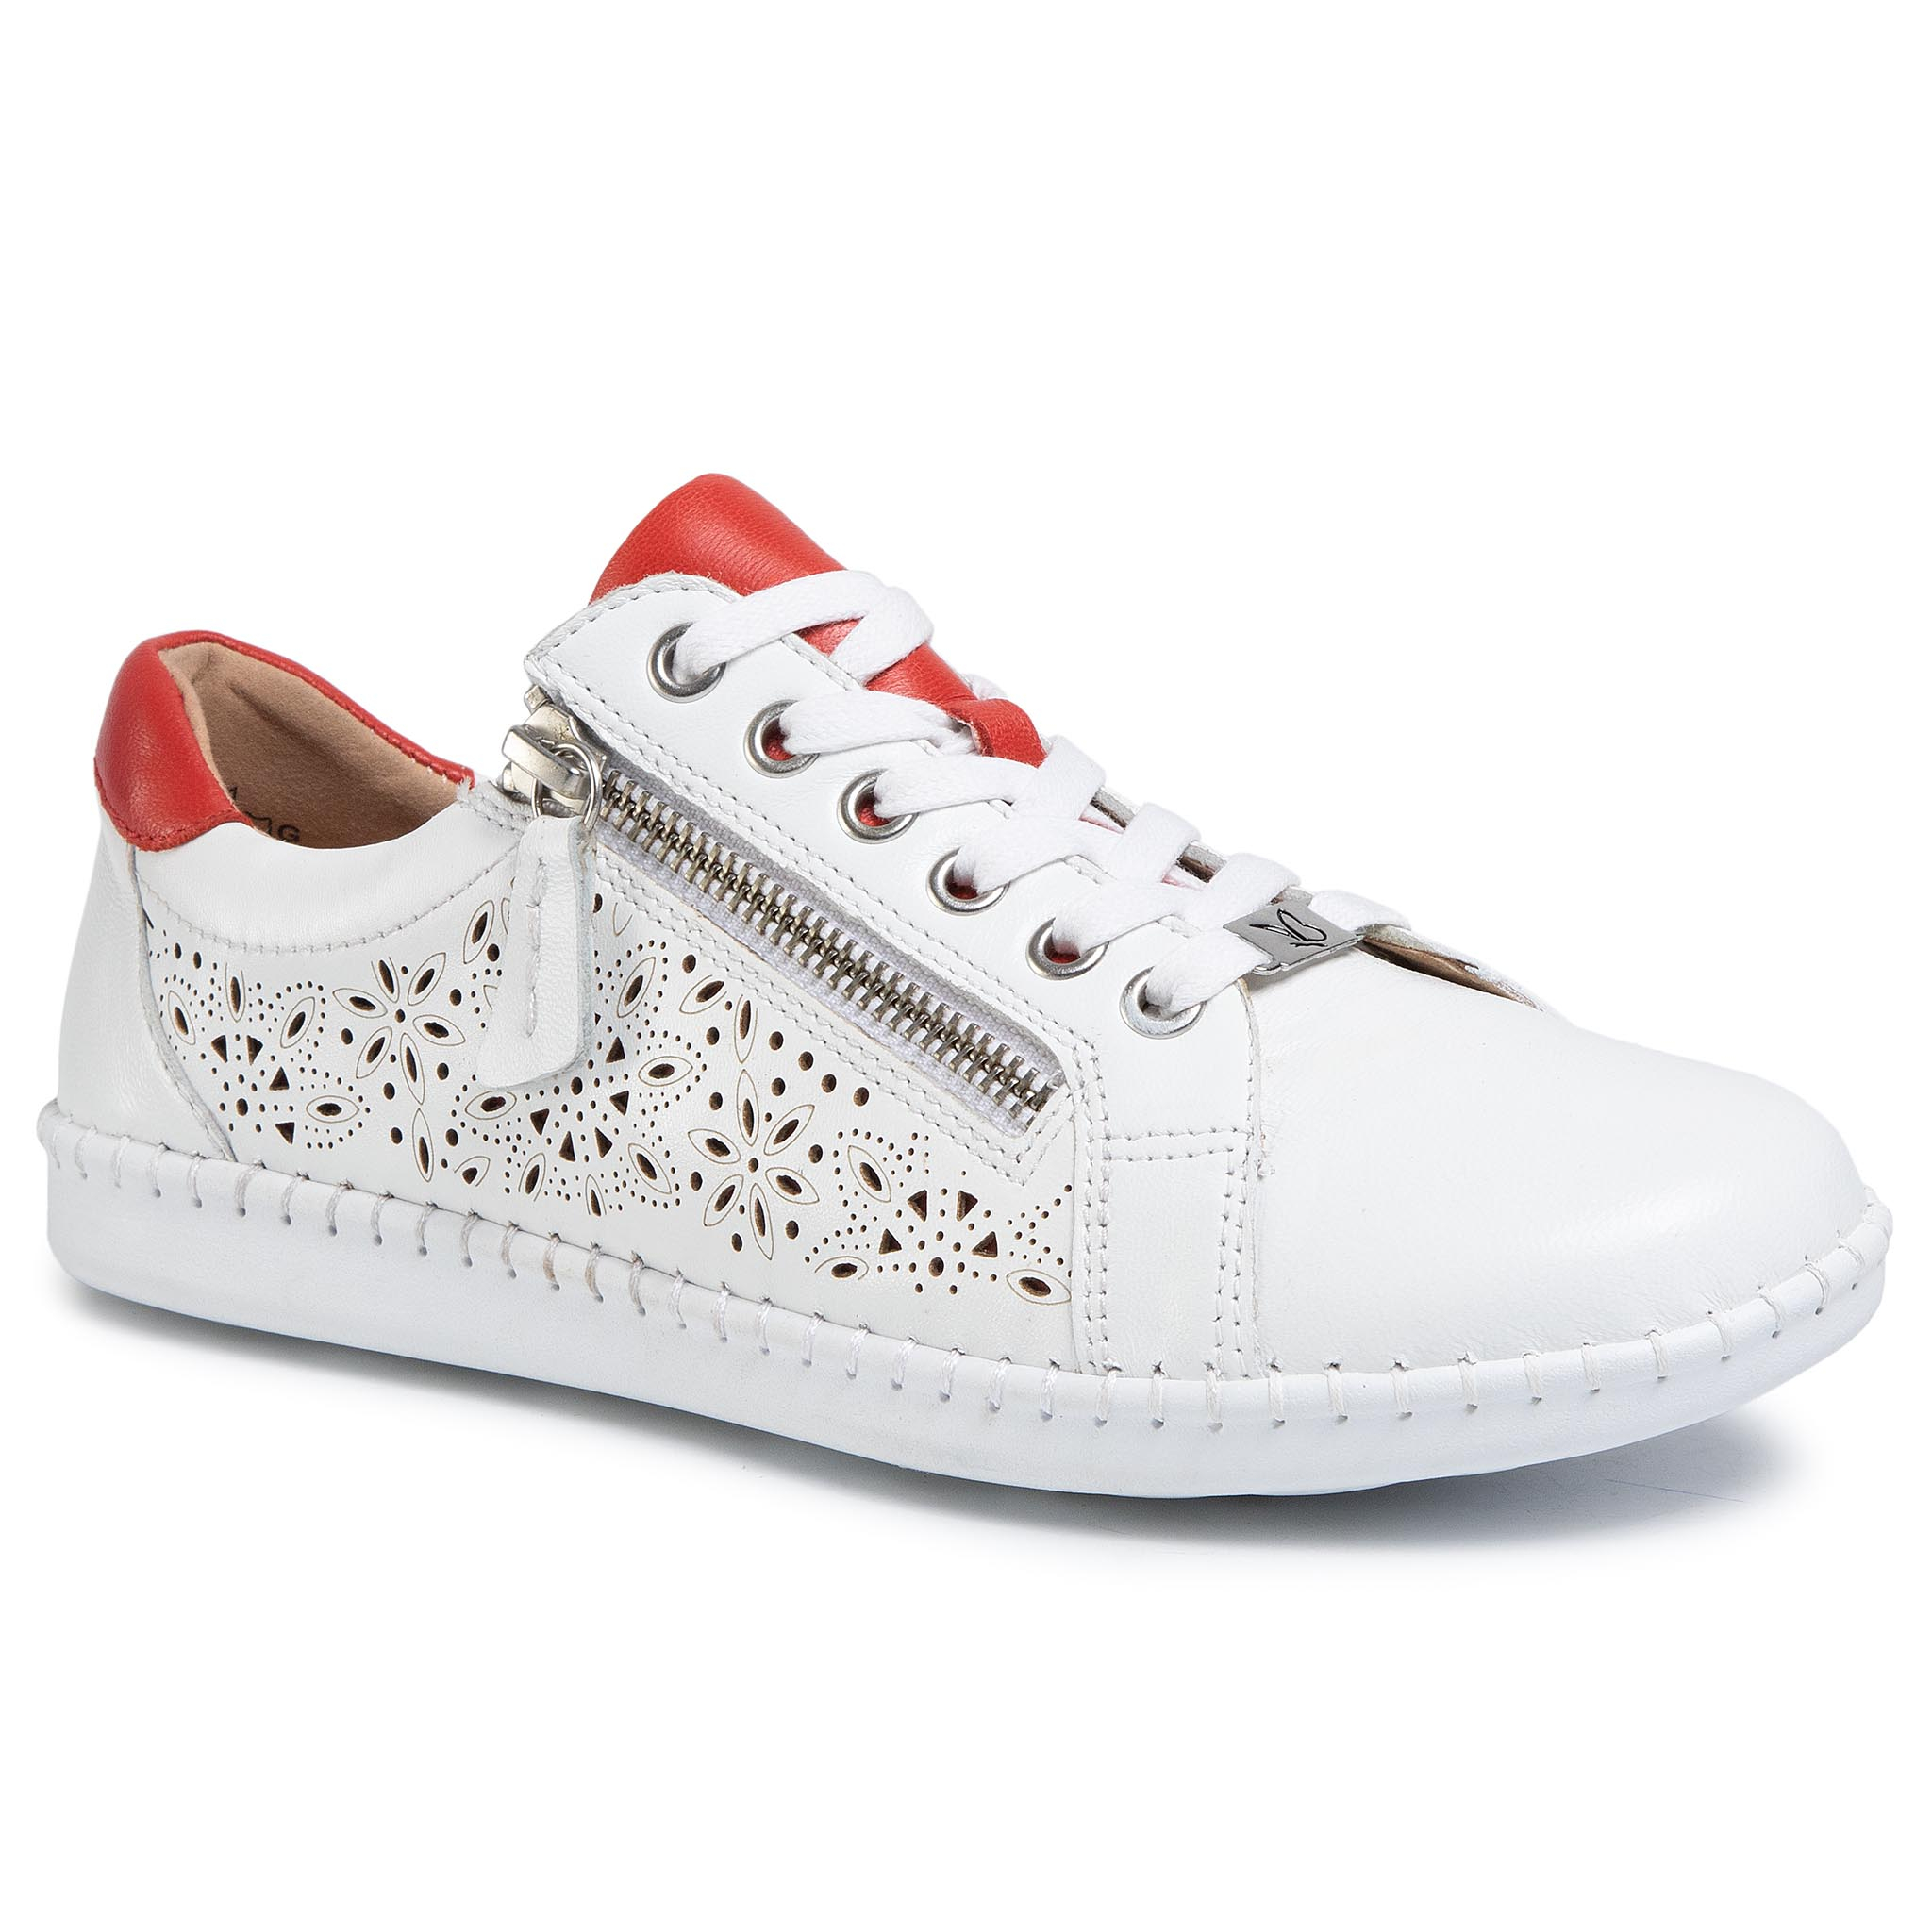 Sneakers CAPRICE - 9-23653-24 White/Red 151